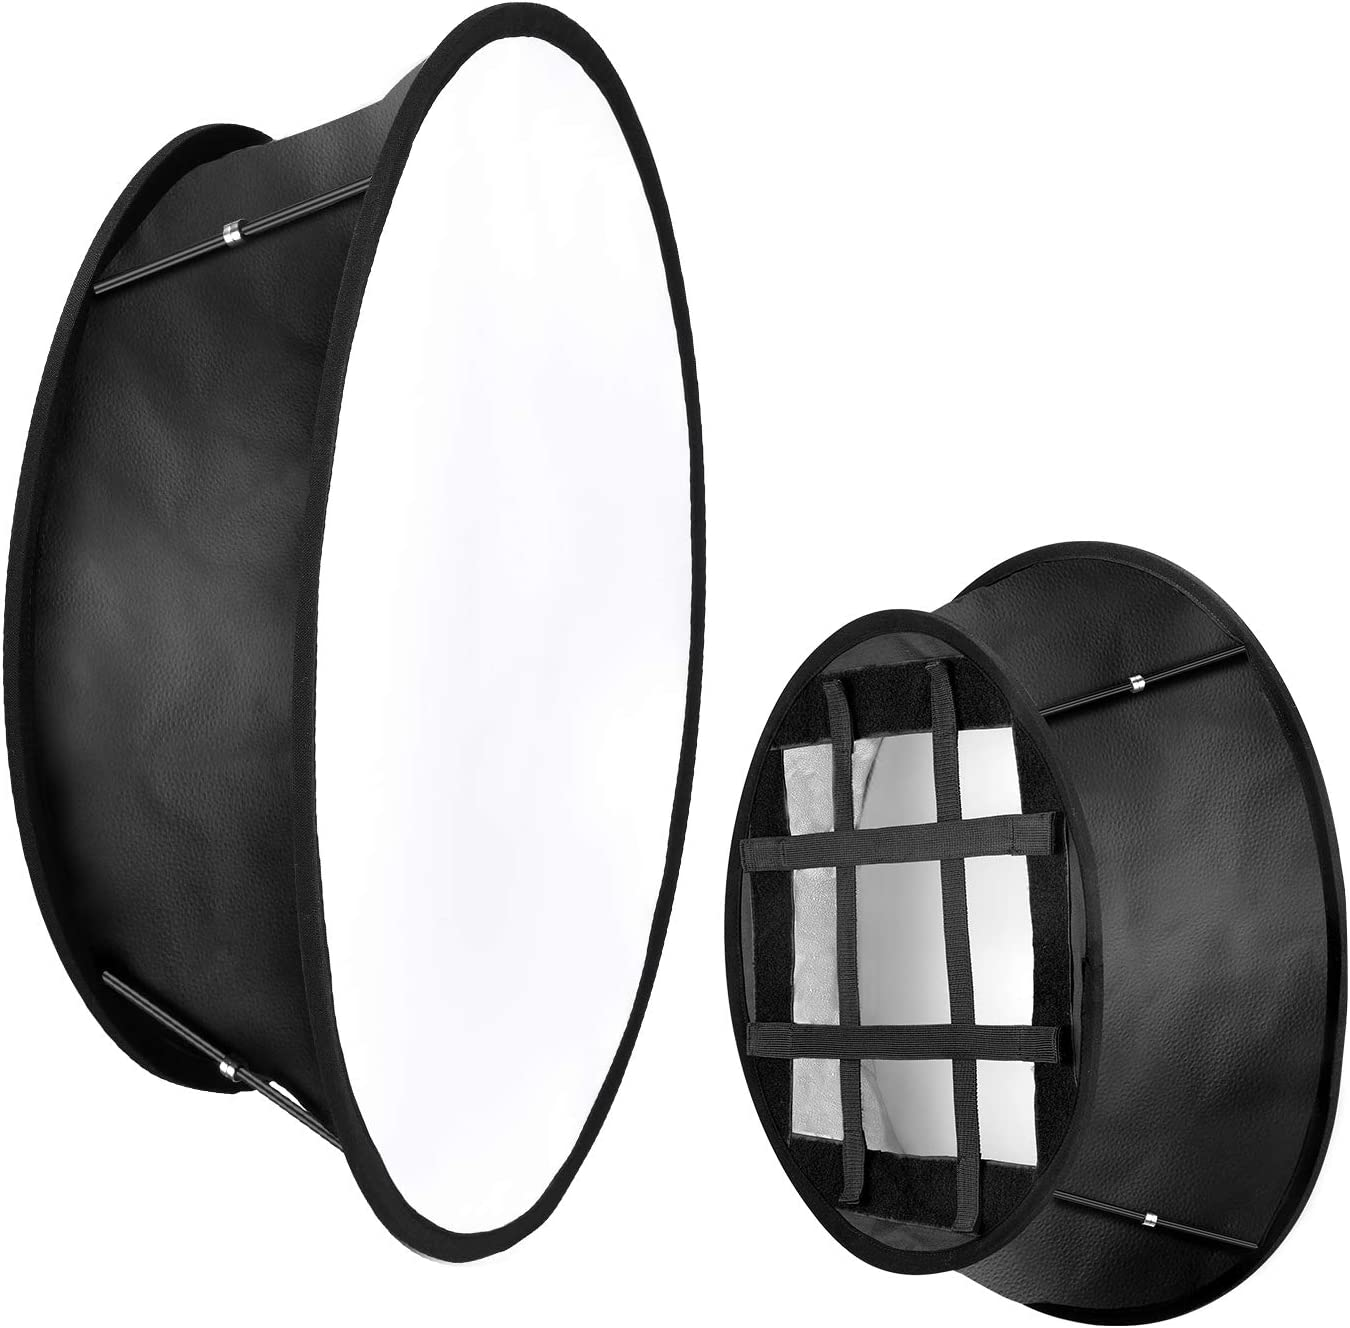 Neewer Collapsible Softbox Diffuser Compatible with Neewer 480//660//530 LED Light Panels 11.5x11.5inches Opening with Strap Attachment and Carry Bag for Photo Studio Portrait Video Shooting